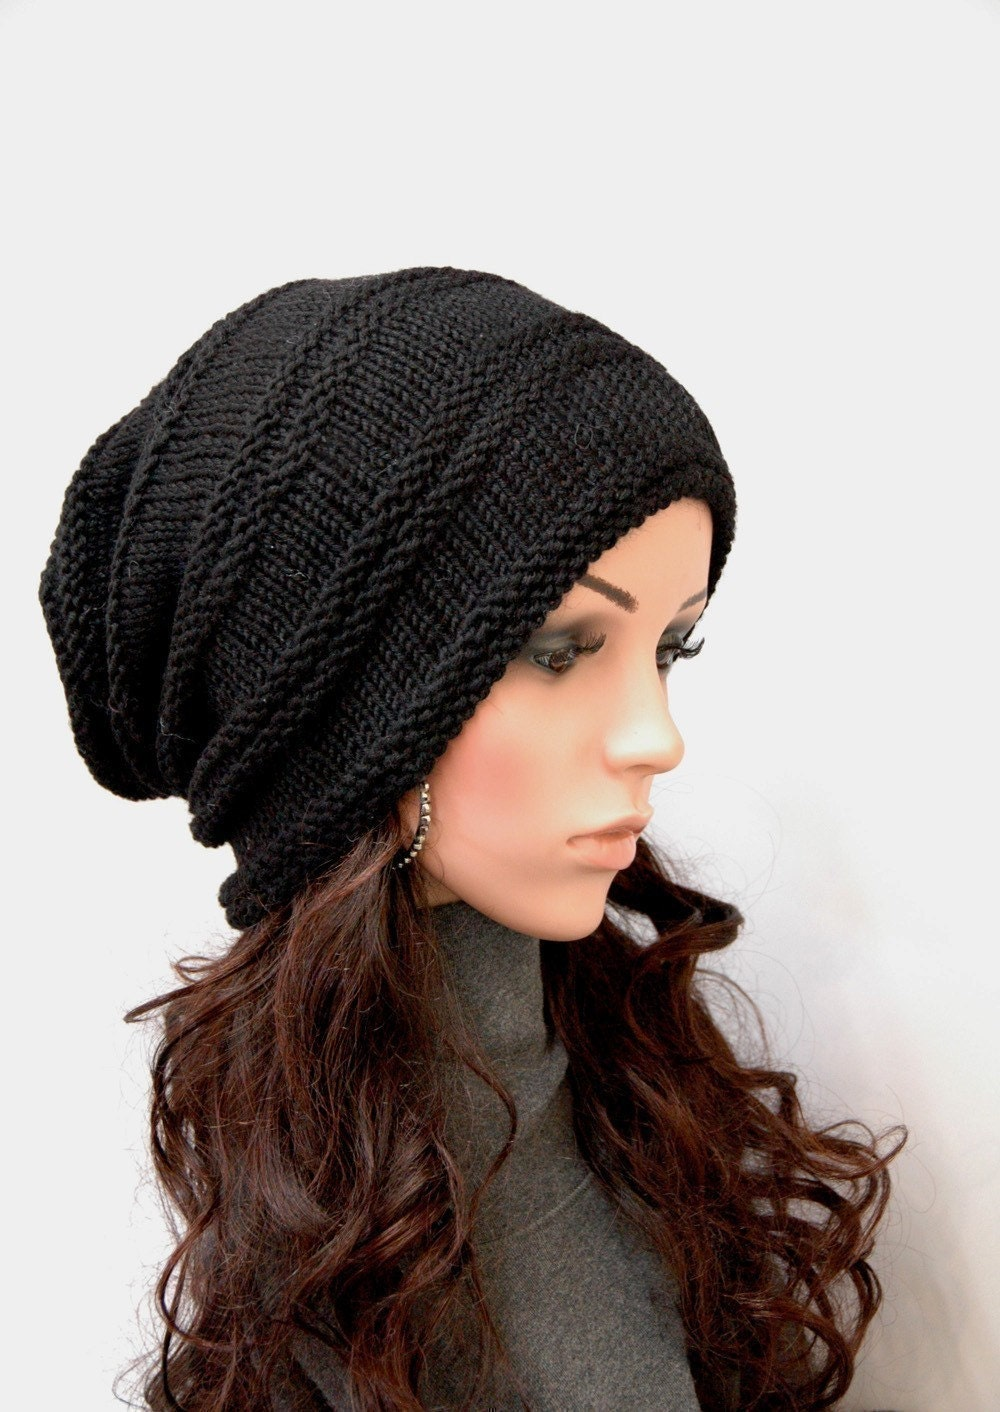 You searched for: wool hat! Etsy is the home to thousands of handmade, vintage, and one-of-a-kind products and gifts related to your search. No matter what you're looking for or where you are in the world, our global marketplace of sellers can help you find unique and affordable options. Let's get started!